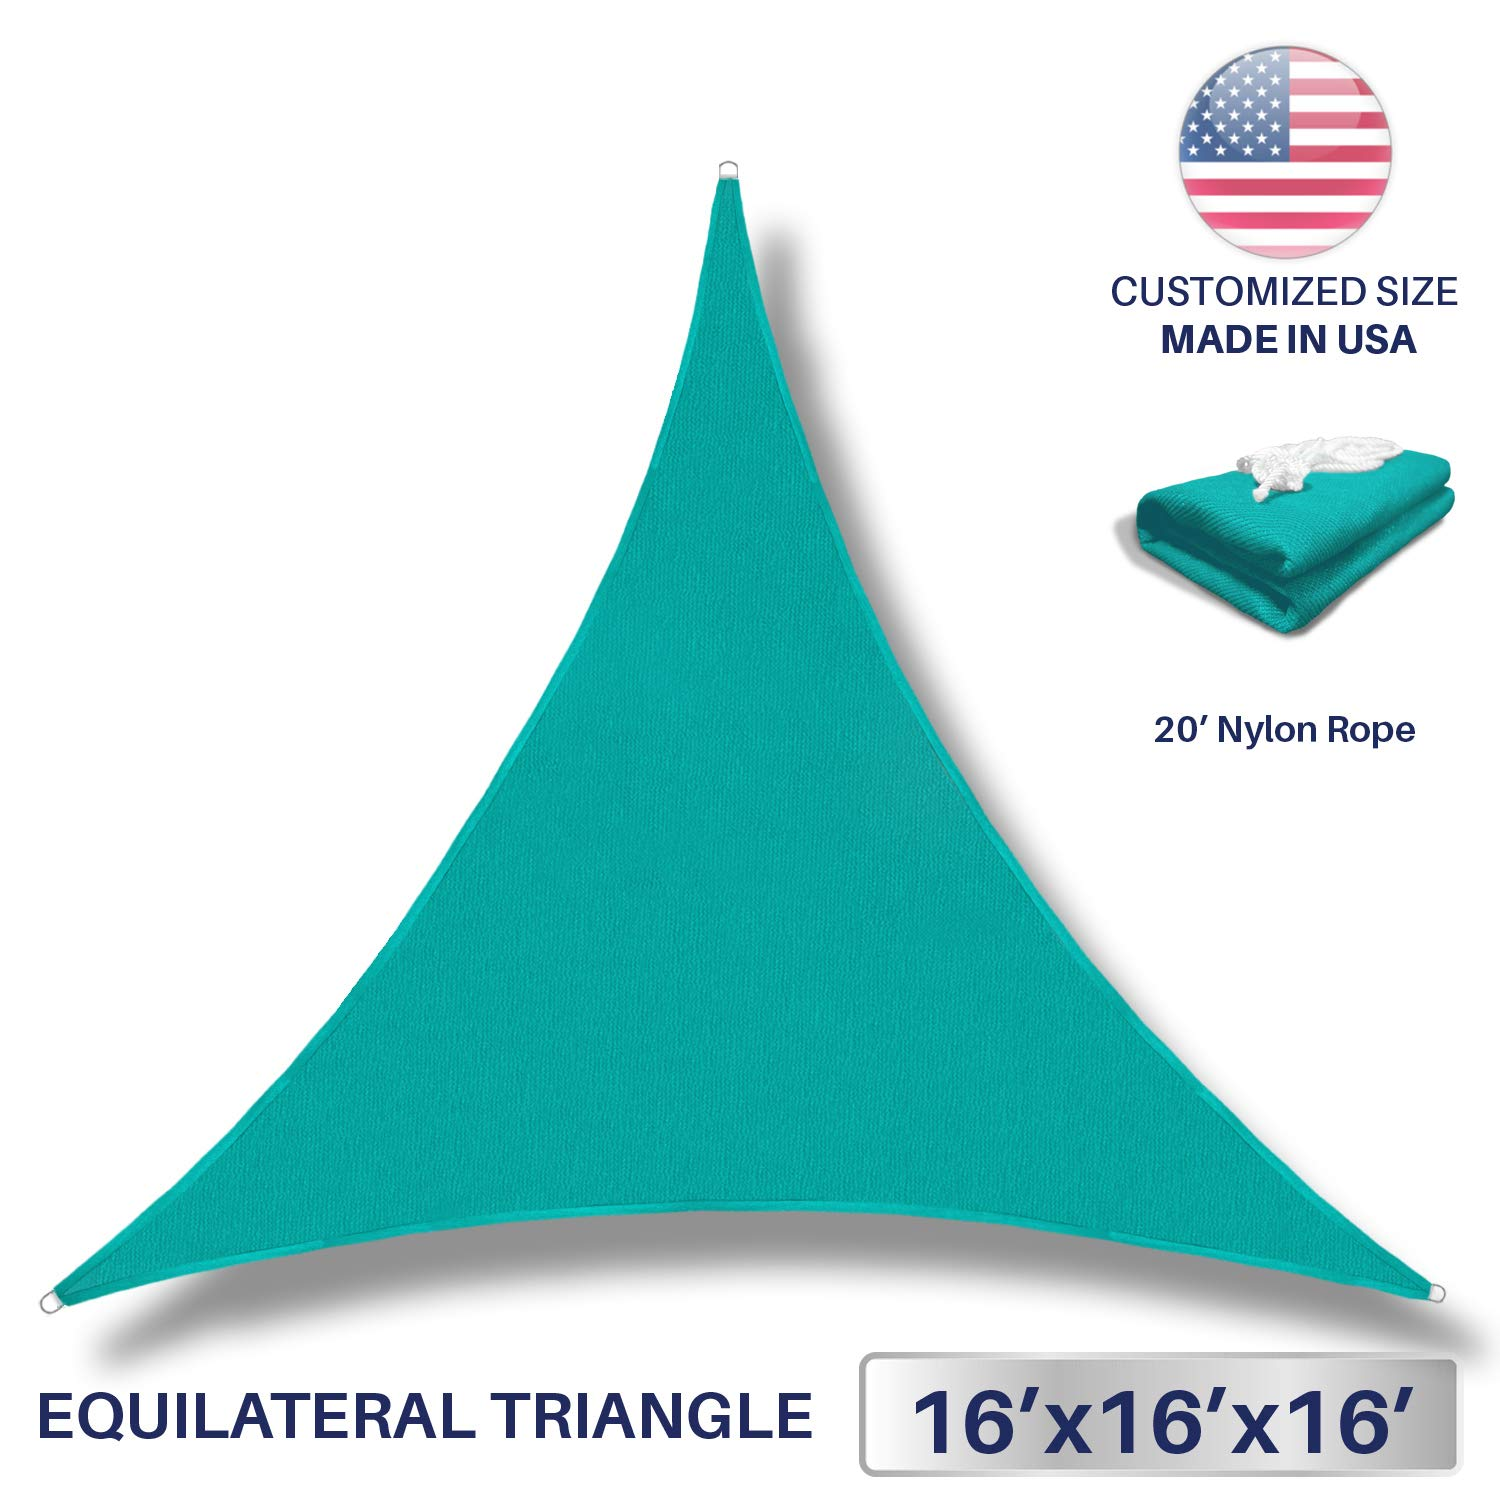 Windscreen4less 16' x 16' x 16' Sun Shade Sail Canopy in Turquoise with Commercial Grade (3 Year Warranty) Customized